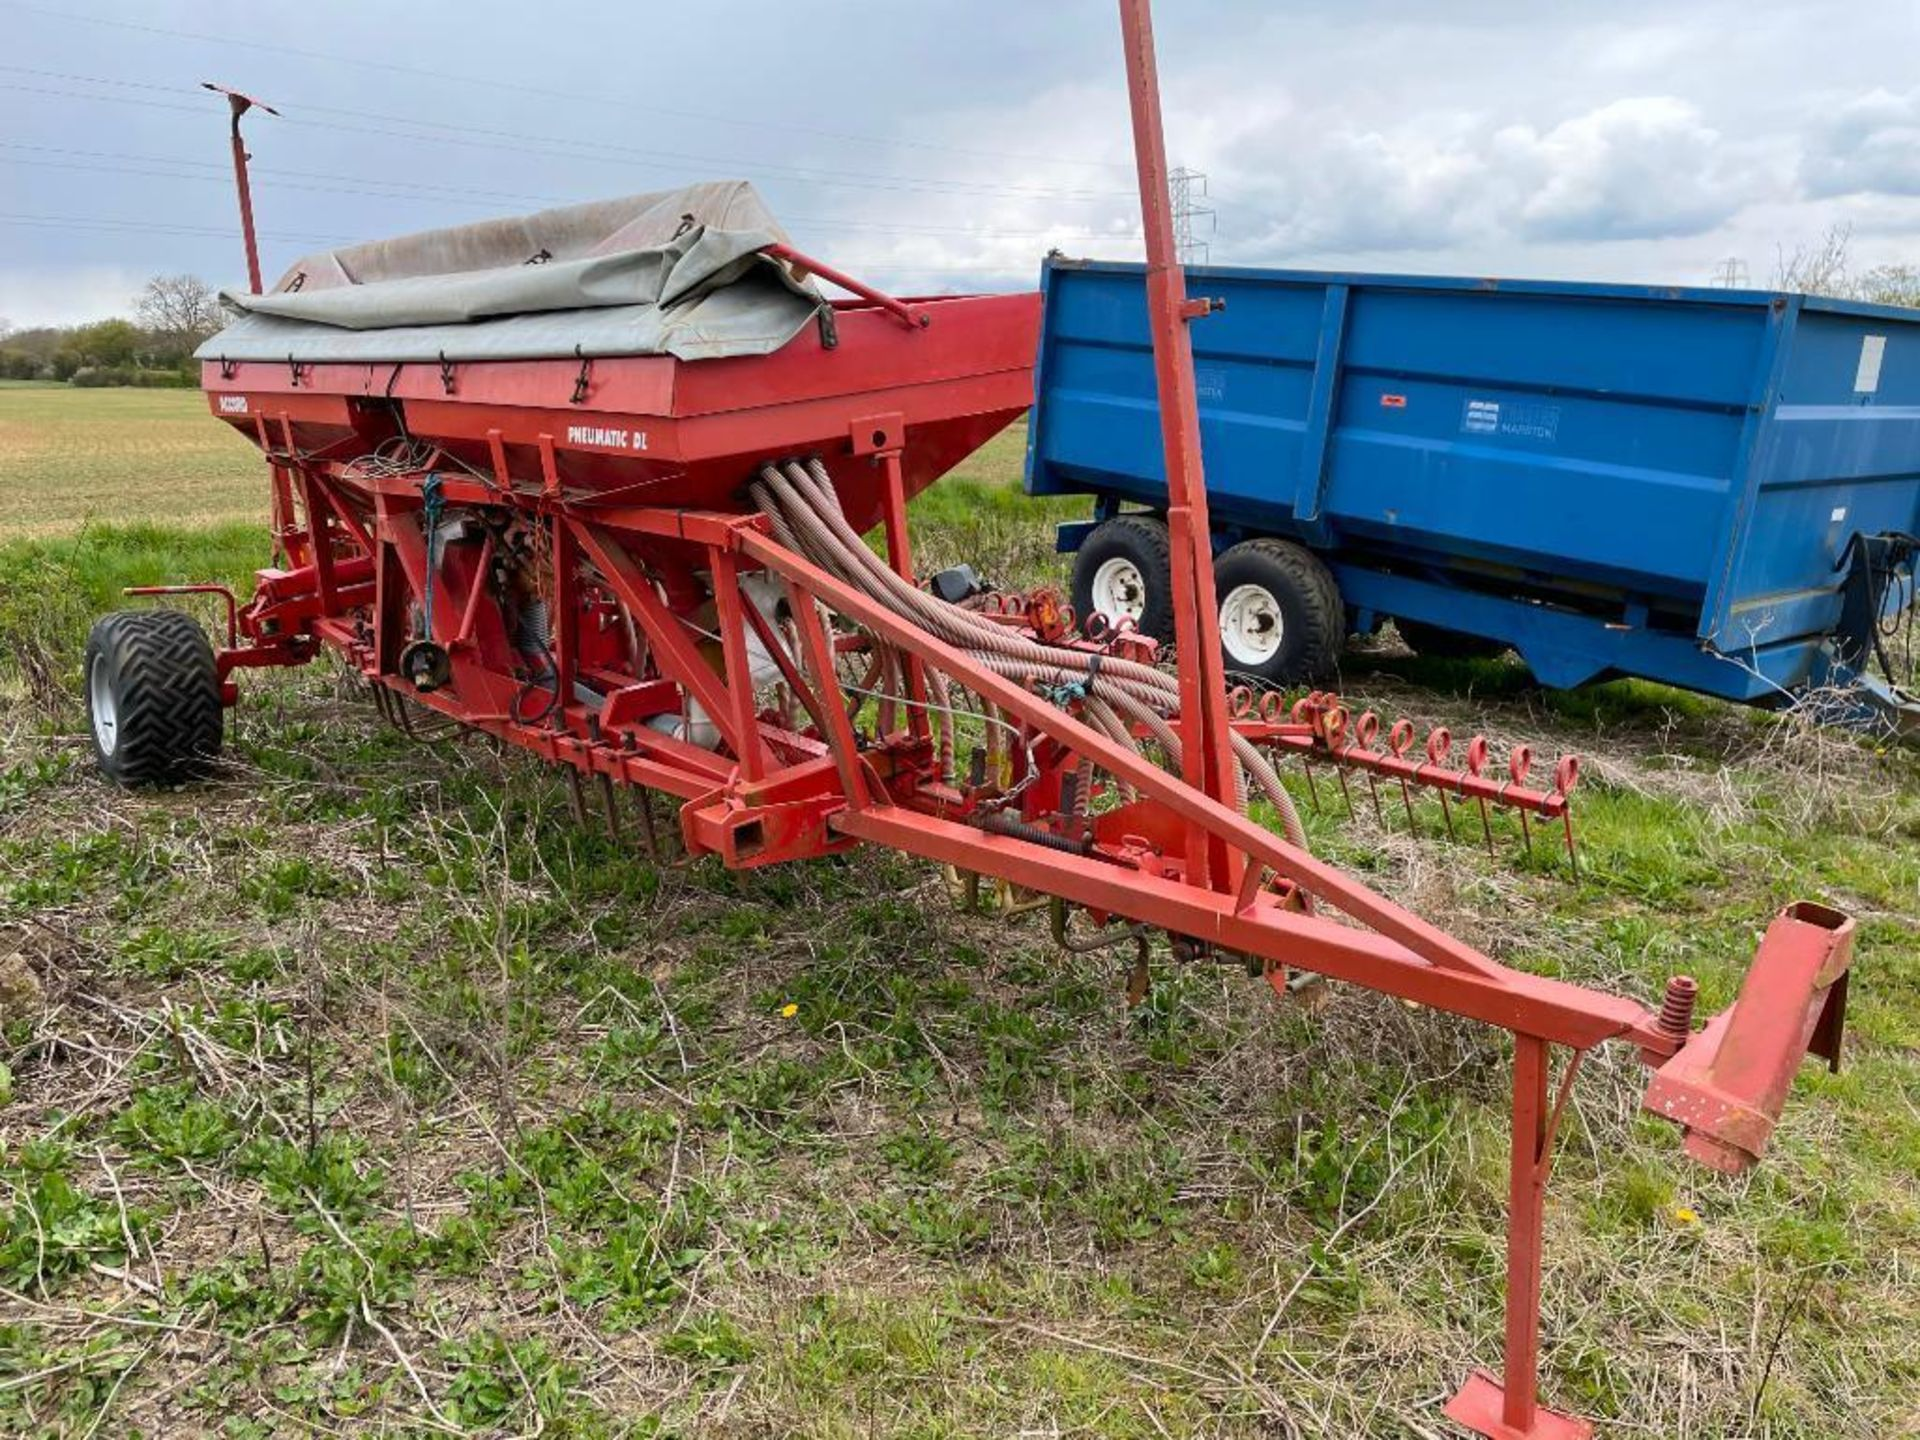 Kverneland Accord Pneumatic DL 6m drill with wheel track eradicators and end tow kit NB: Control box - Image 5 of 5